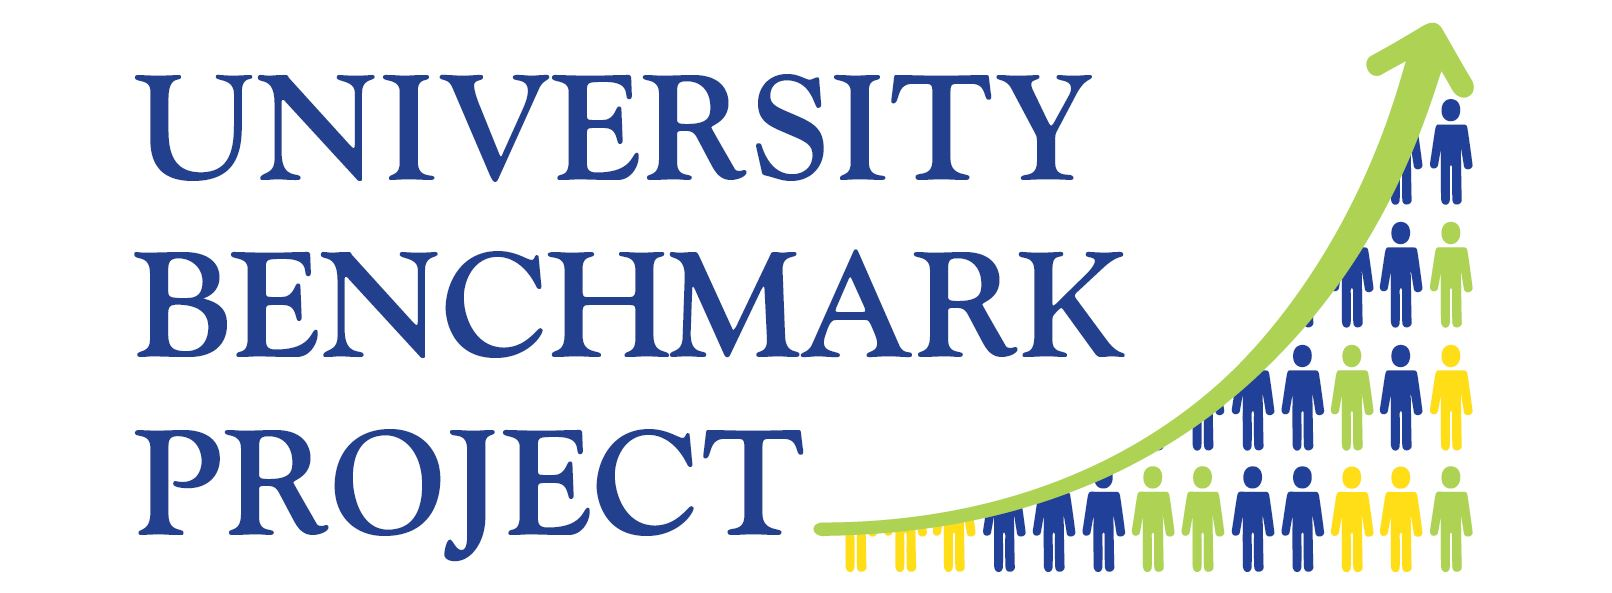 University Benchmark Project